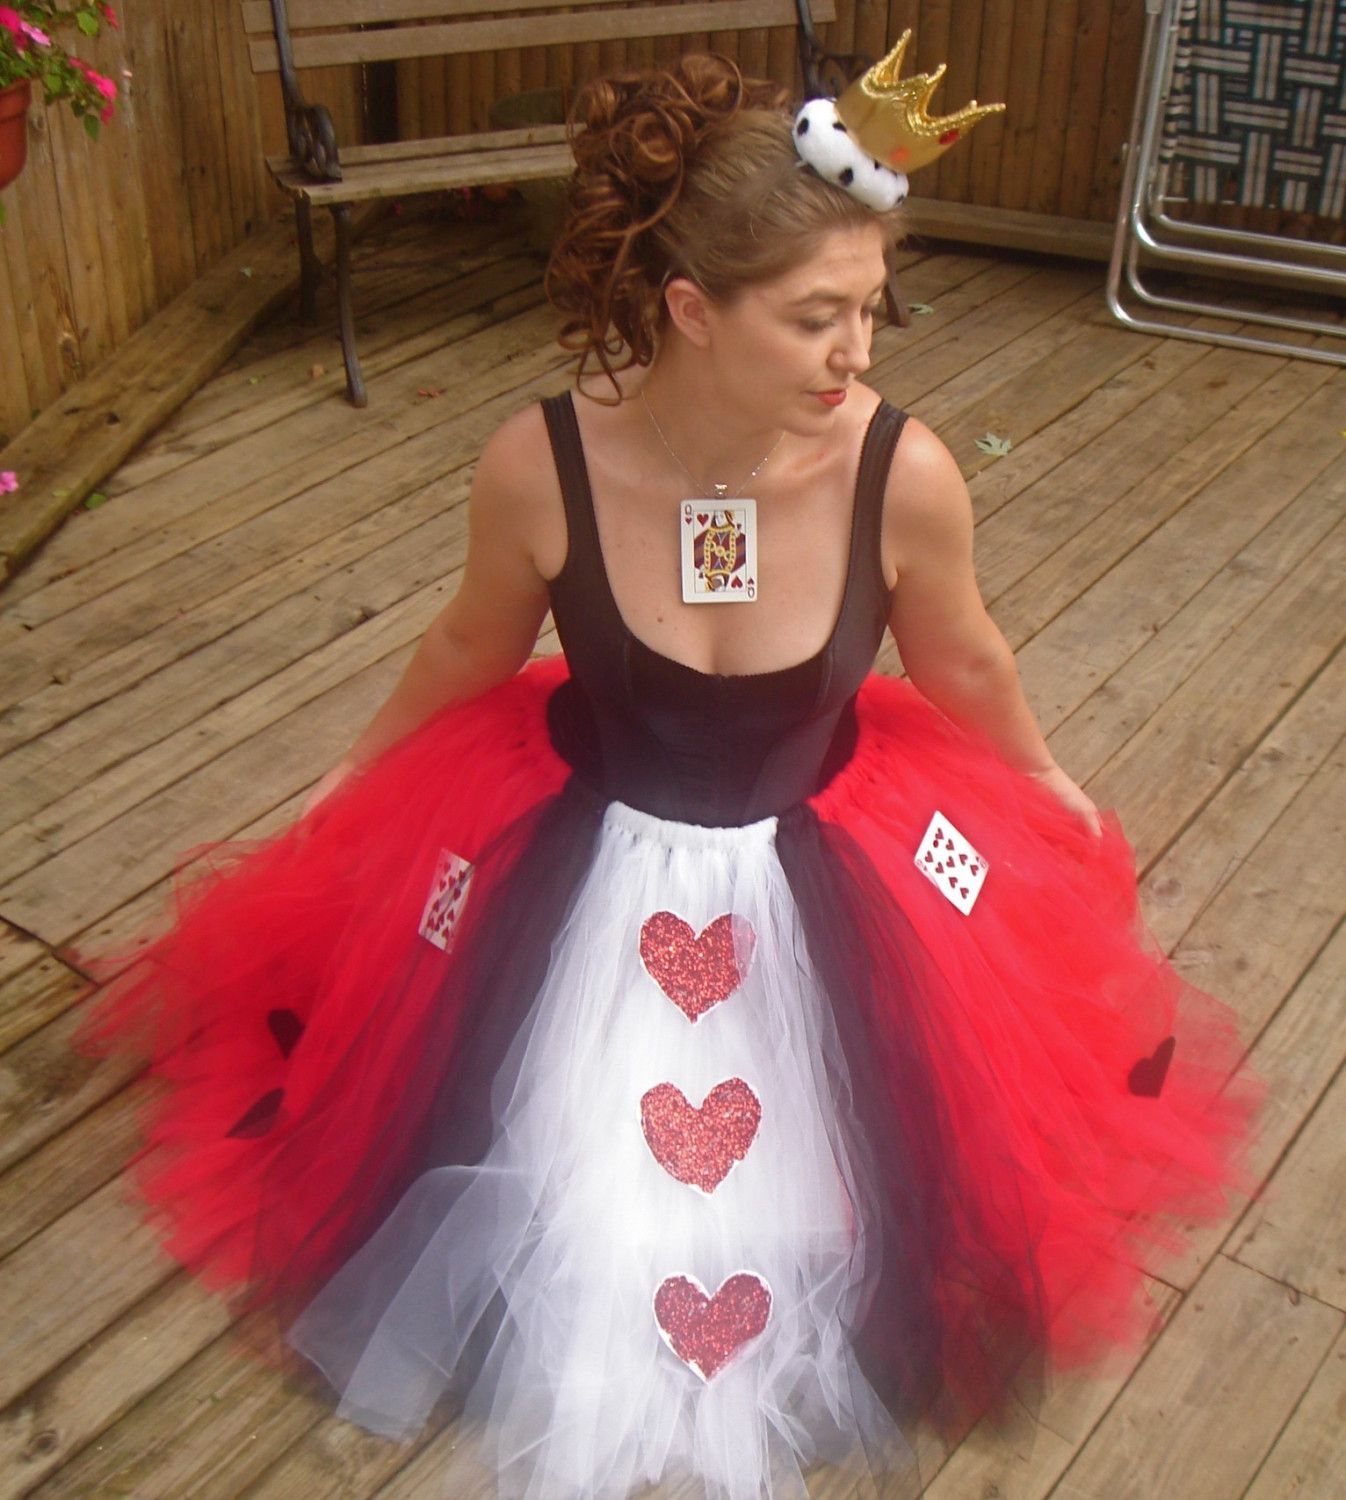 Queen of Hearts Adult Boutique Tutu Skirt Costume | Tutu, Cheap ...